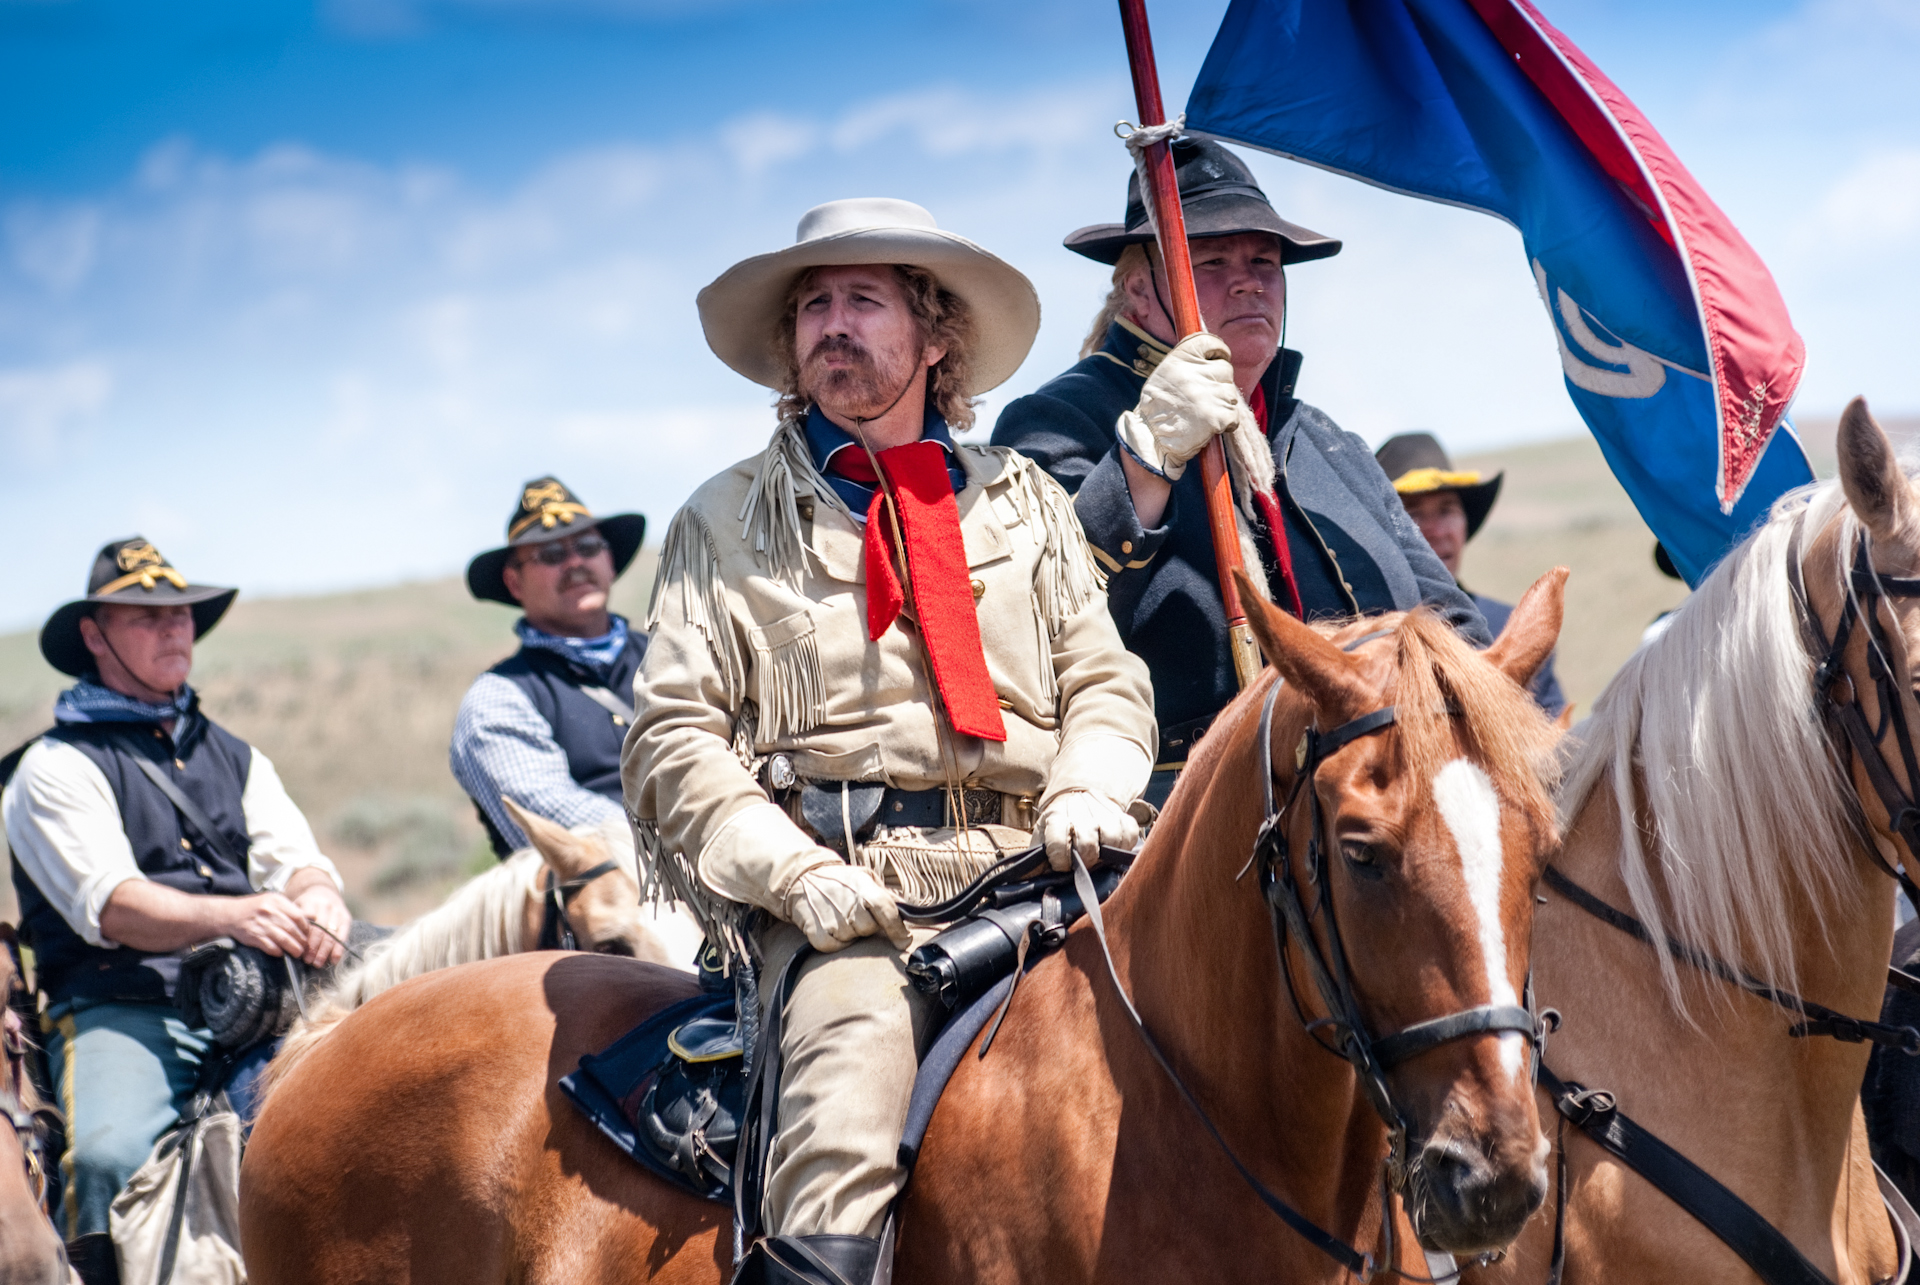 Custer's Last Stand, Again